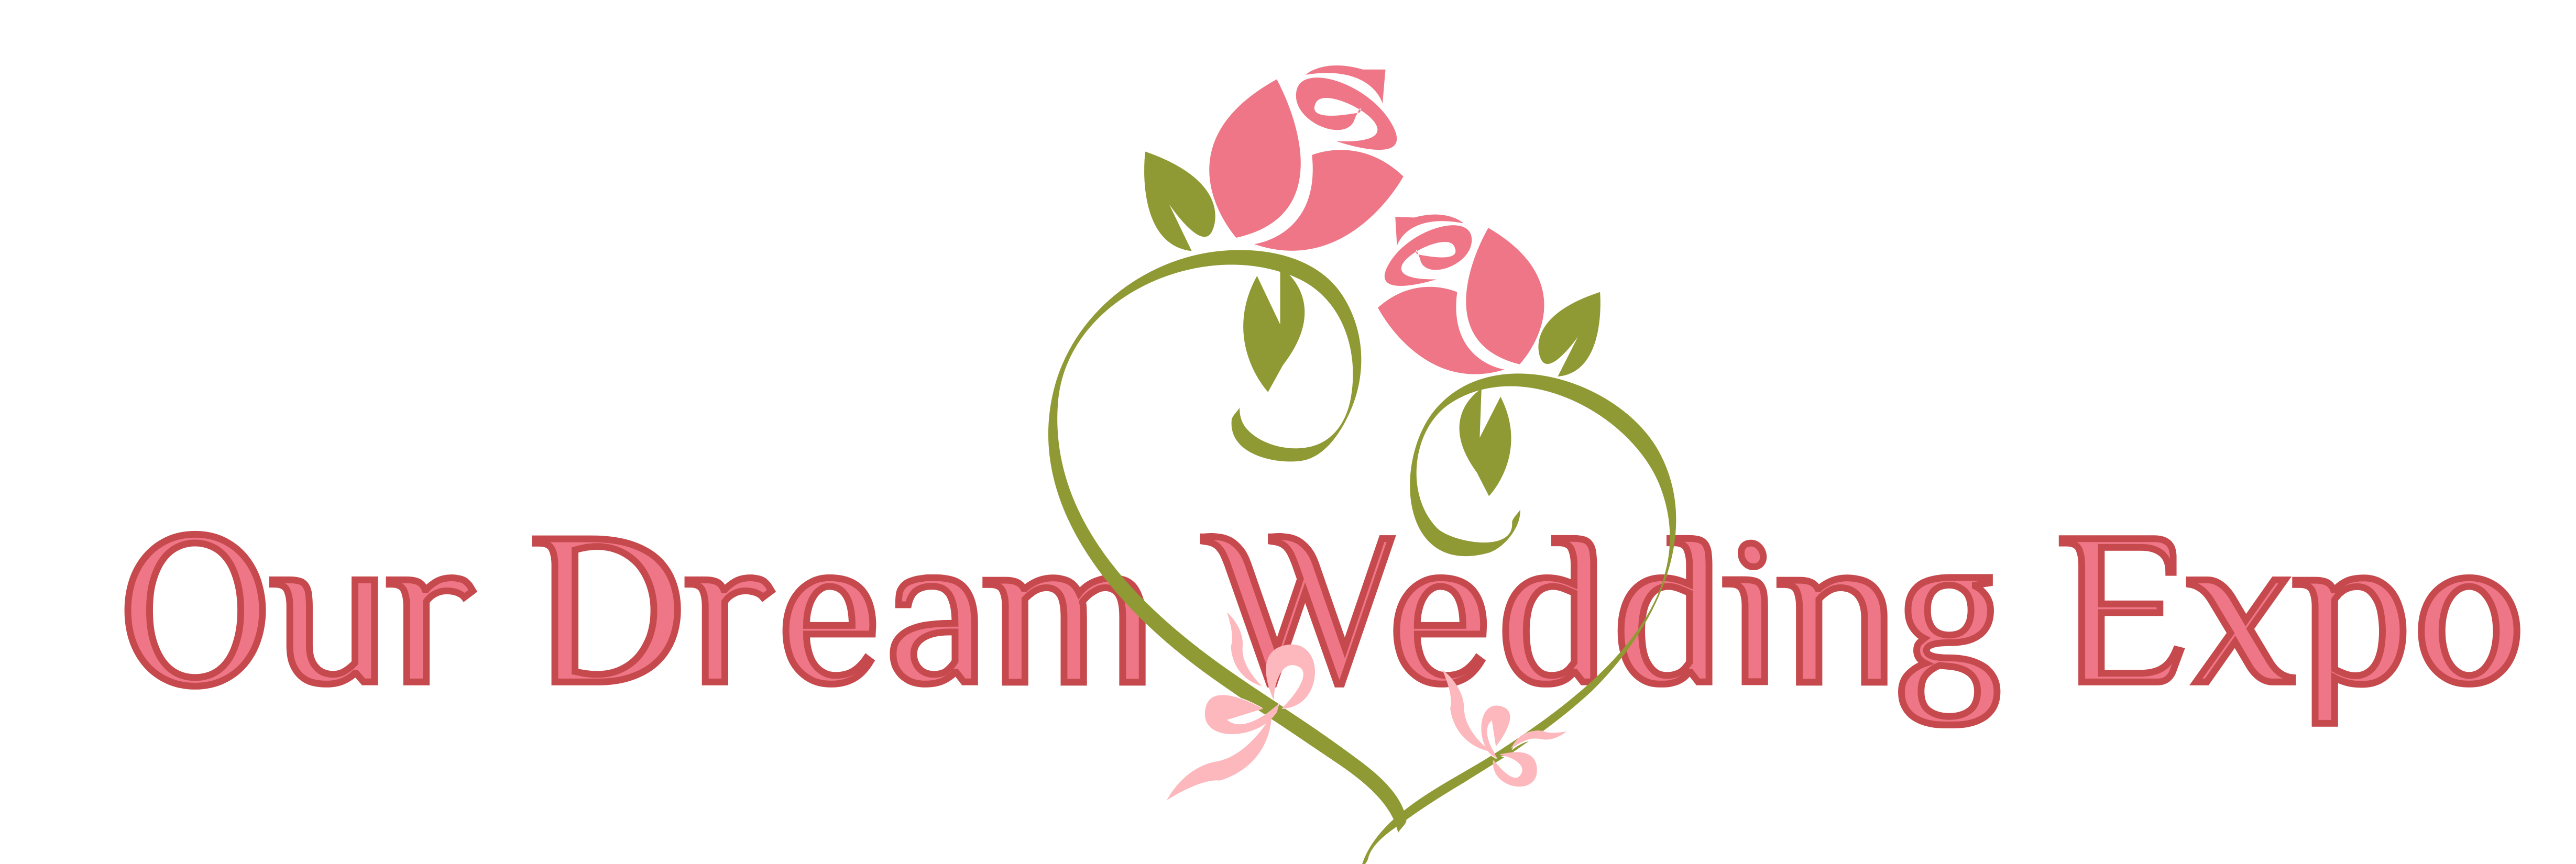 Our Dream Wedding Expo - Making Dream Weddings Come True